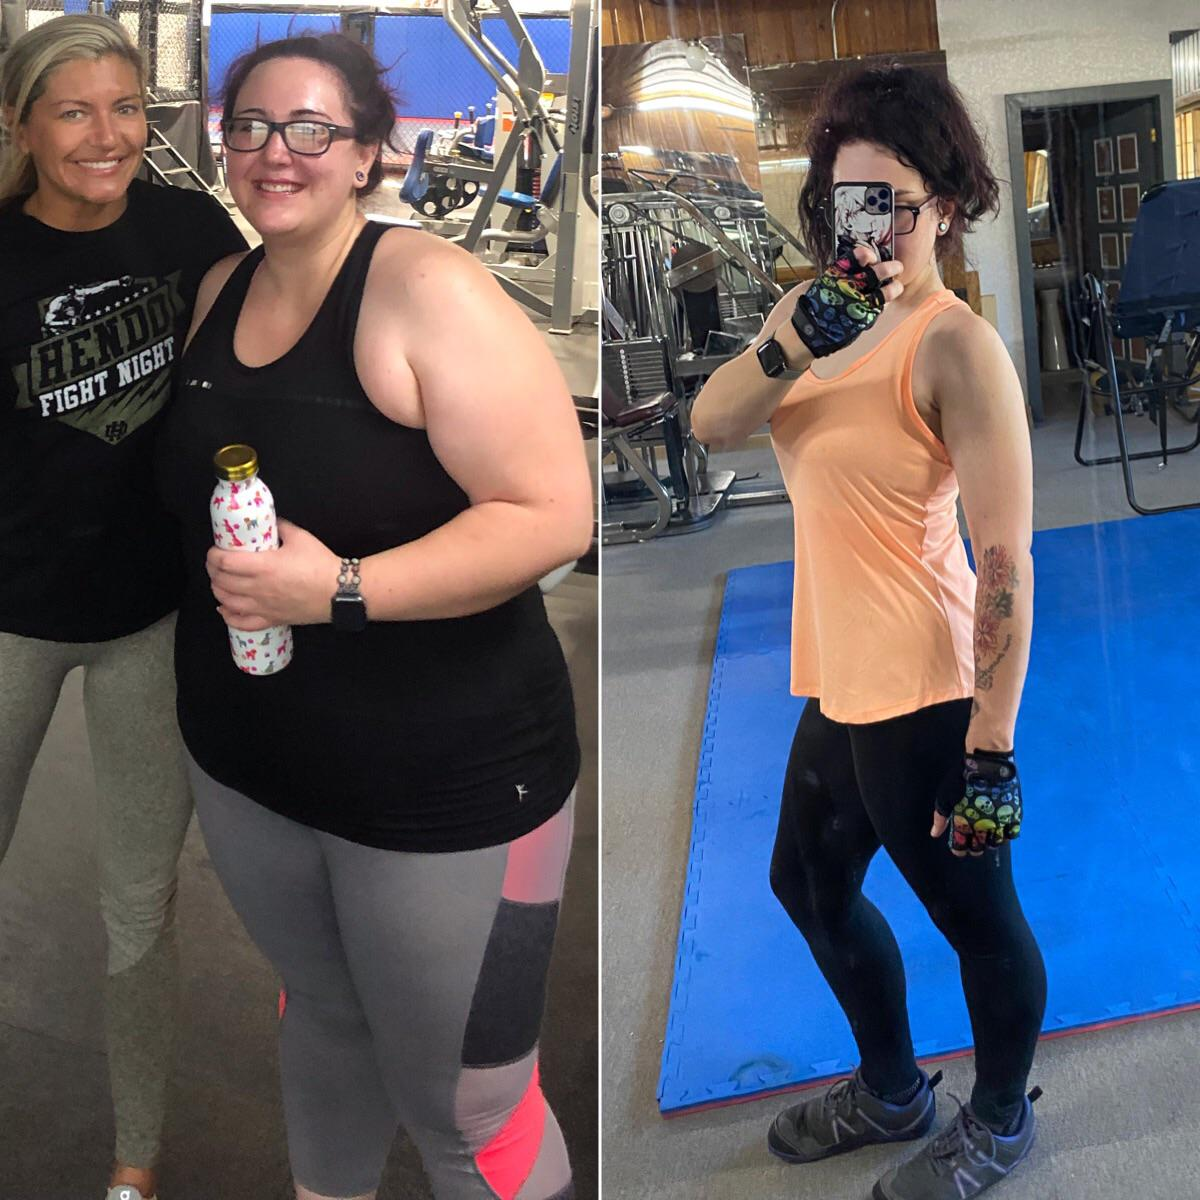 5 foot 5 Female Before and After 125 lbs Weight Loss 273 lbs to 148 lbs